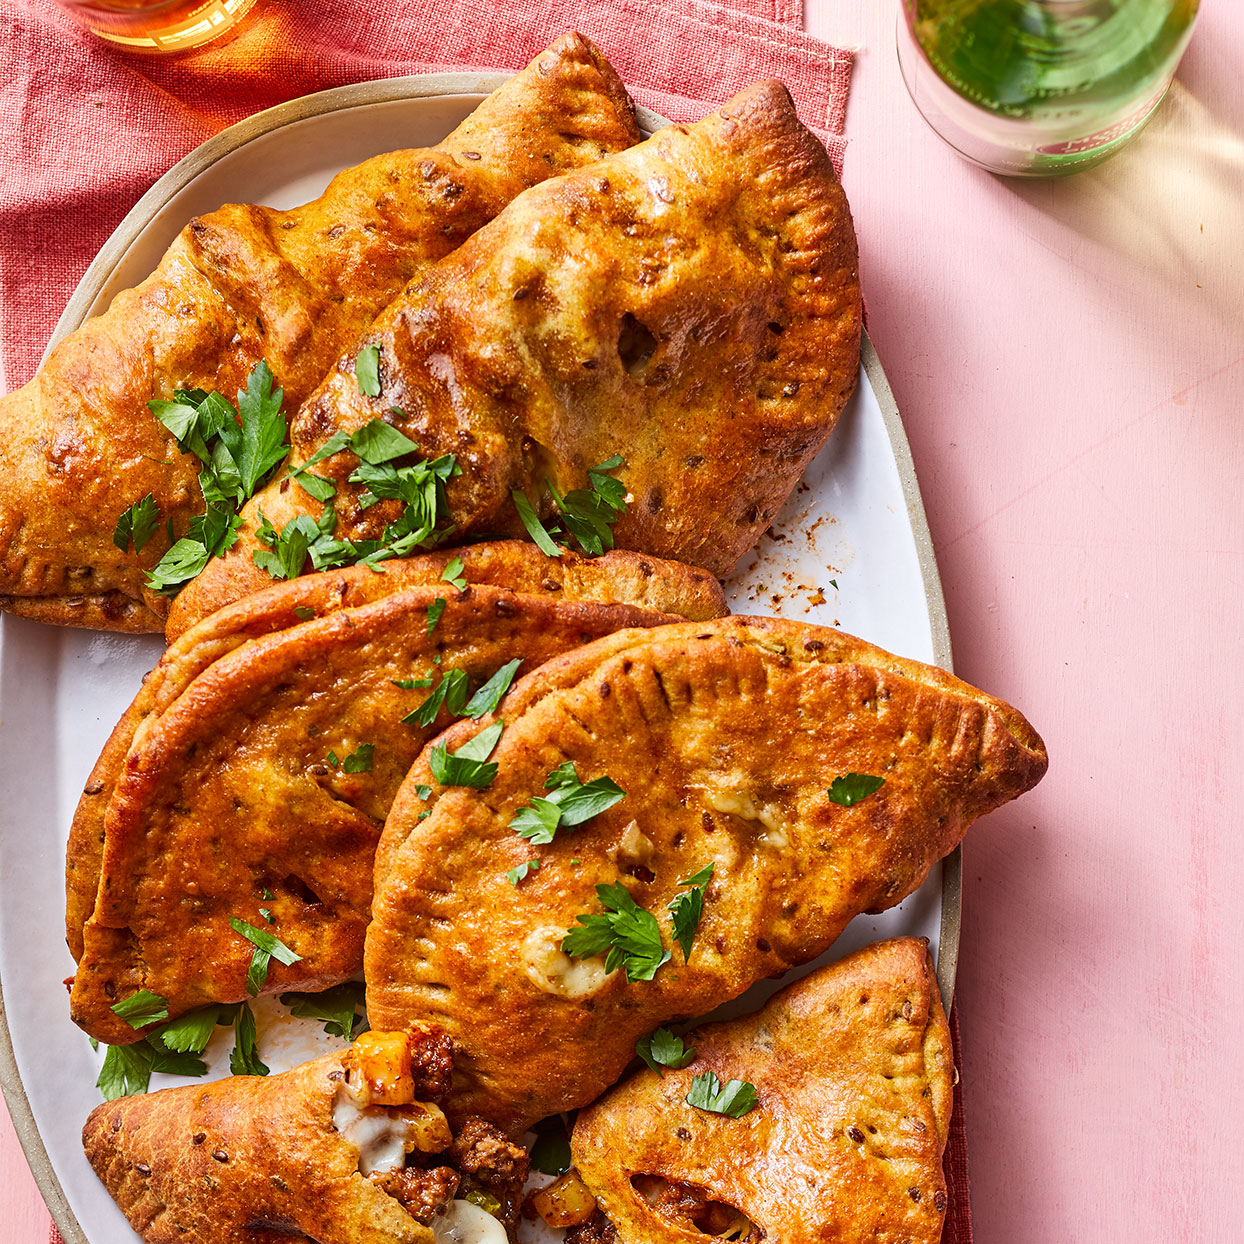 These samosa-inspired savory hand pies call for curry powder and garam masala, spice blends that allow you to add the power of 10 spices in just two ingredients.